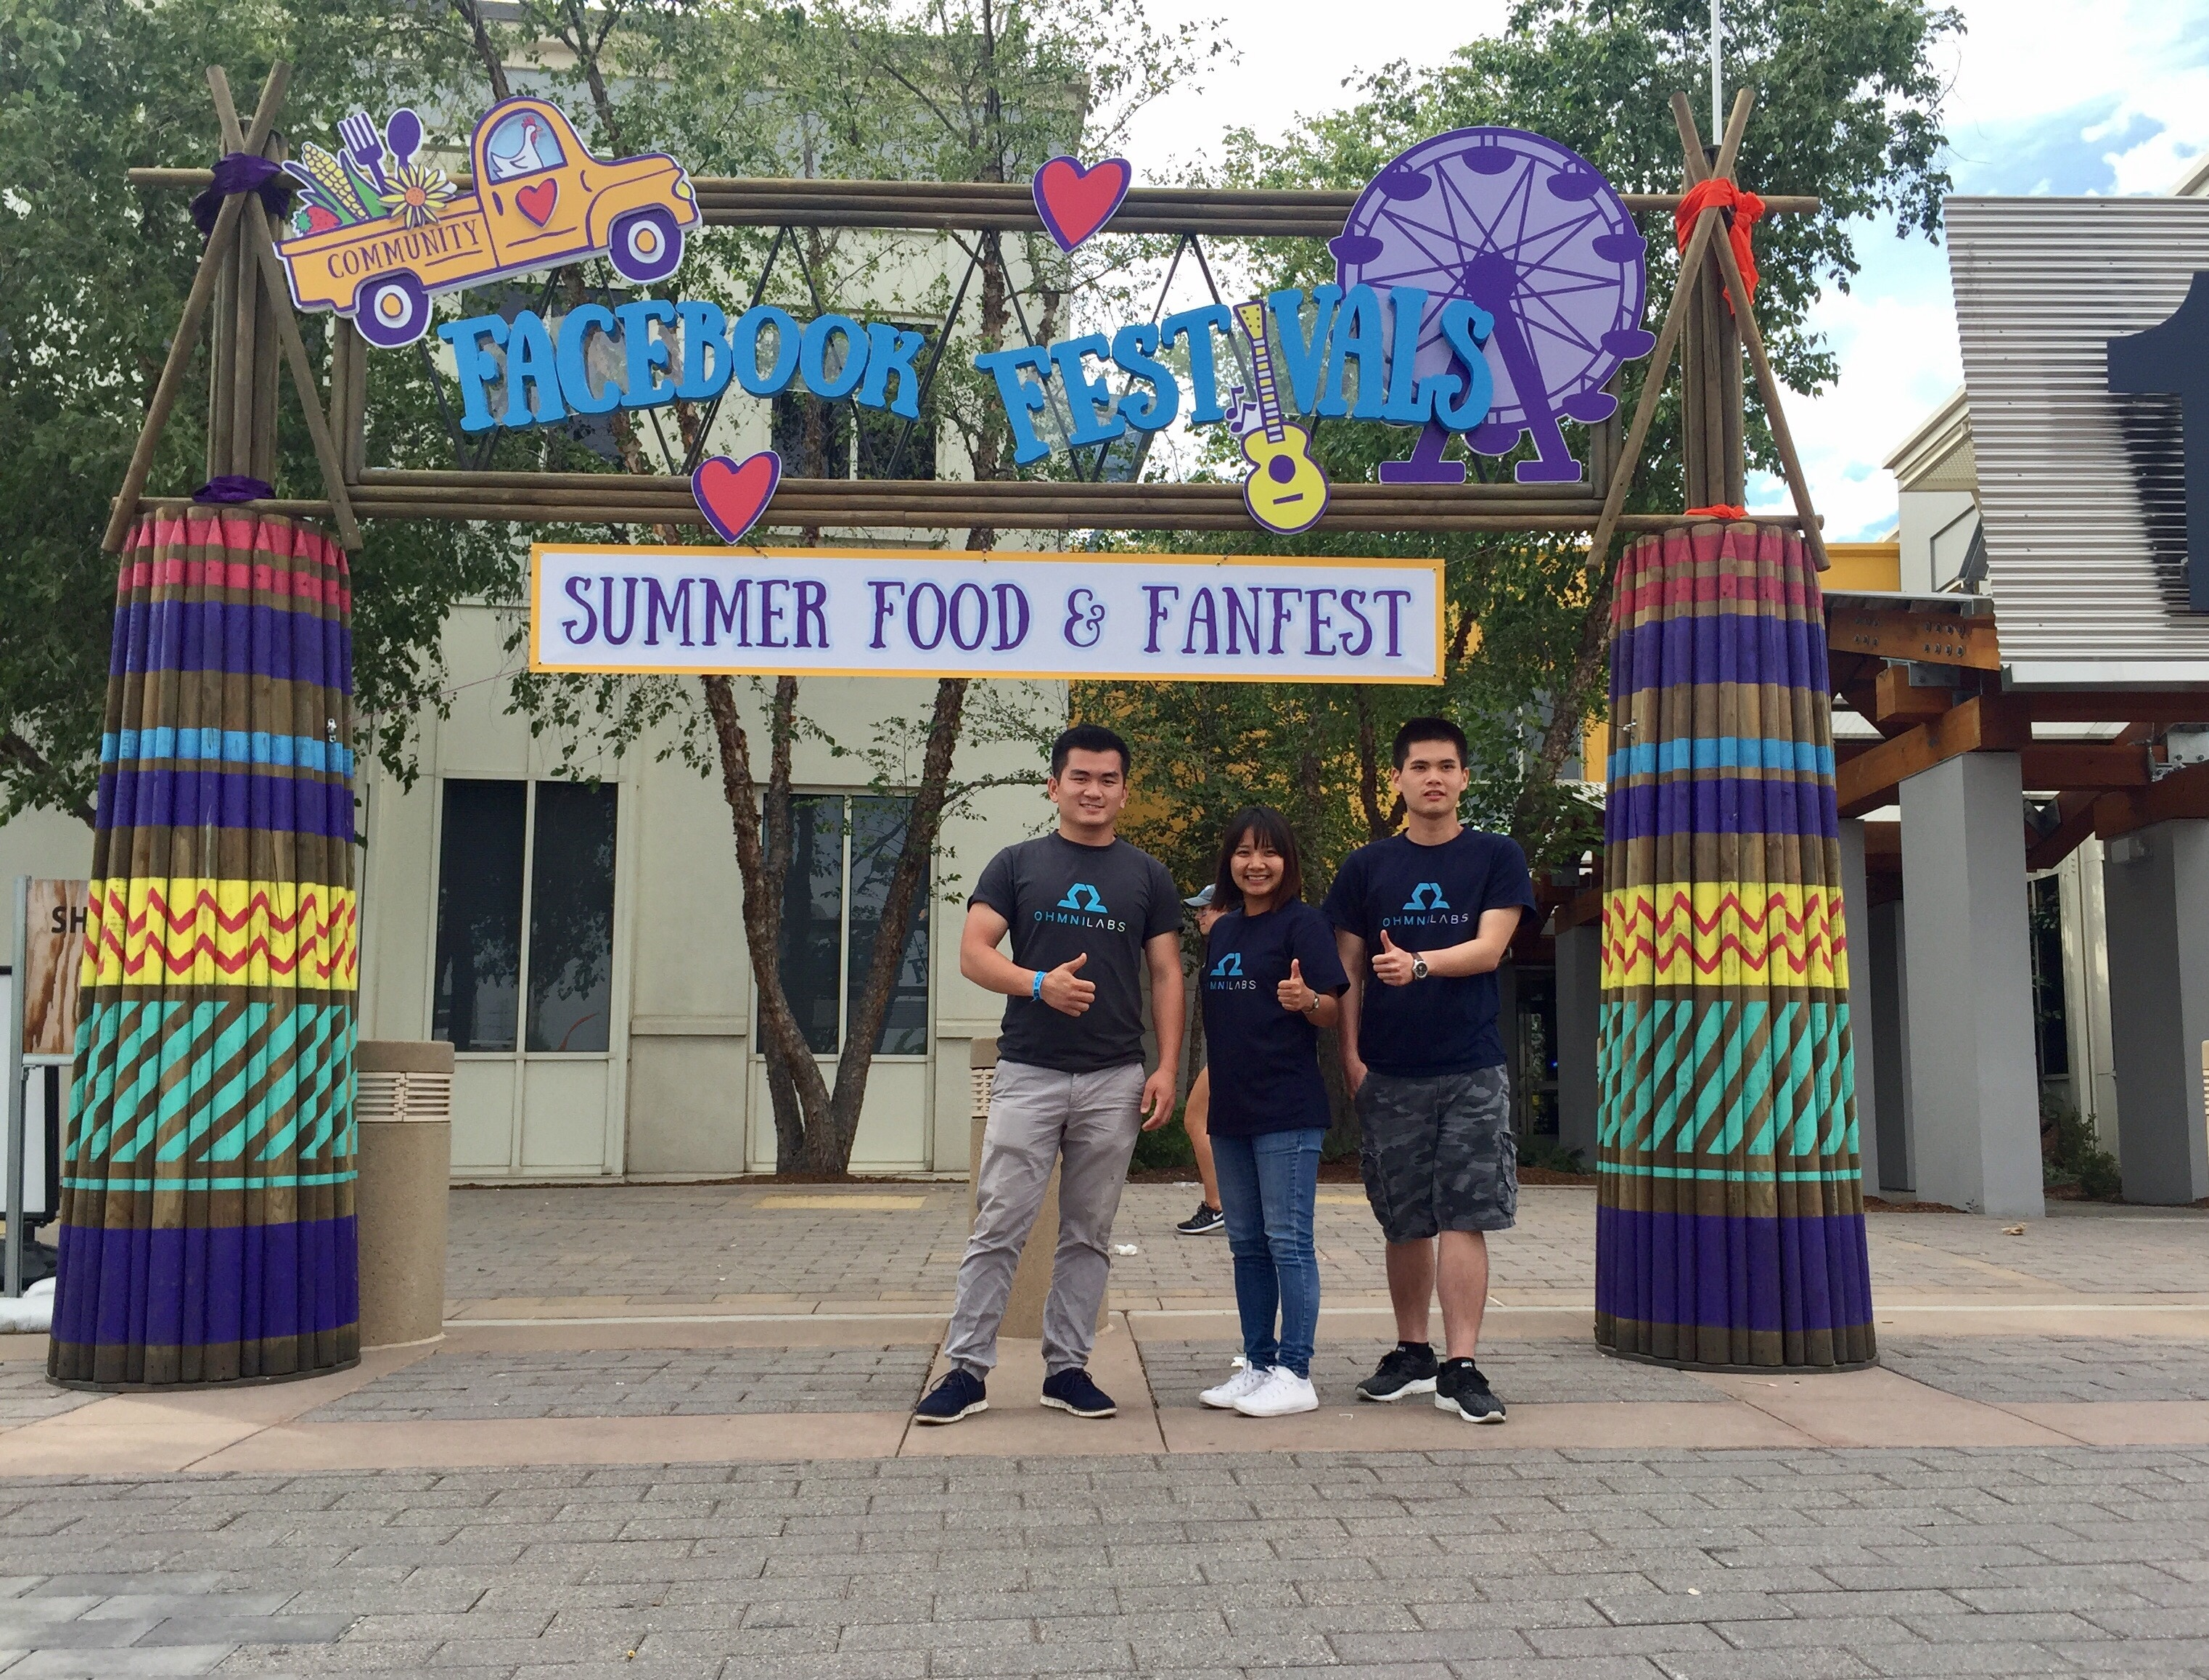 Ushering in Summer with Family and Robotics at Facebook's Summer Food & FanFest